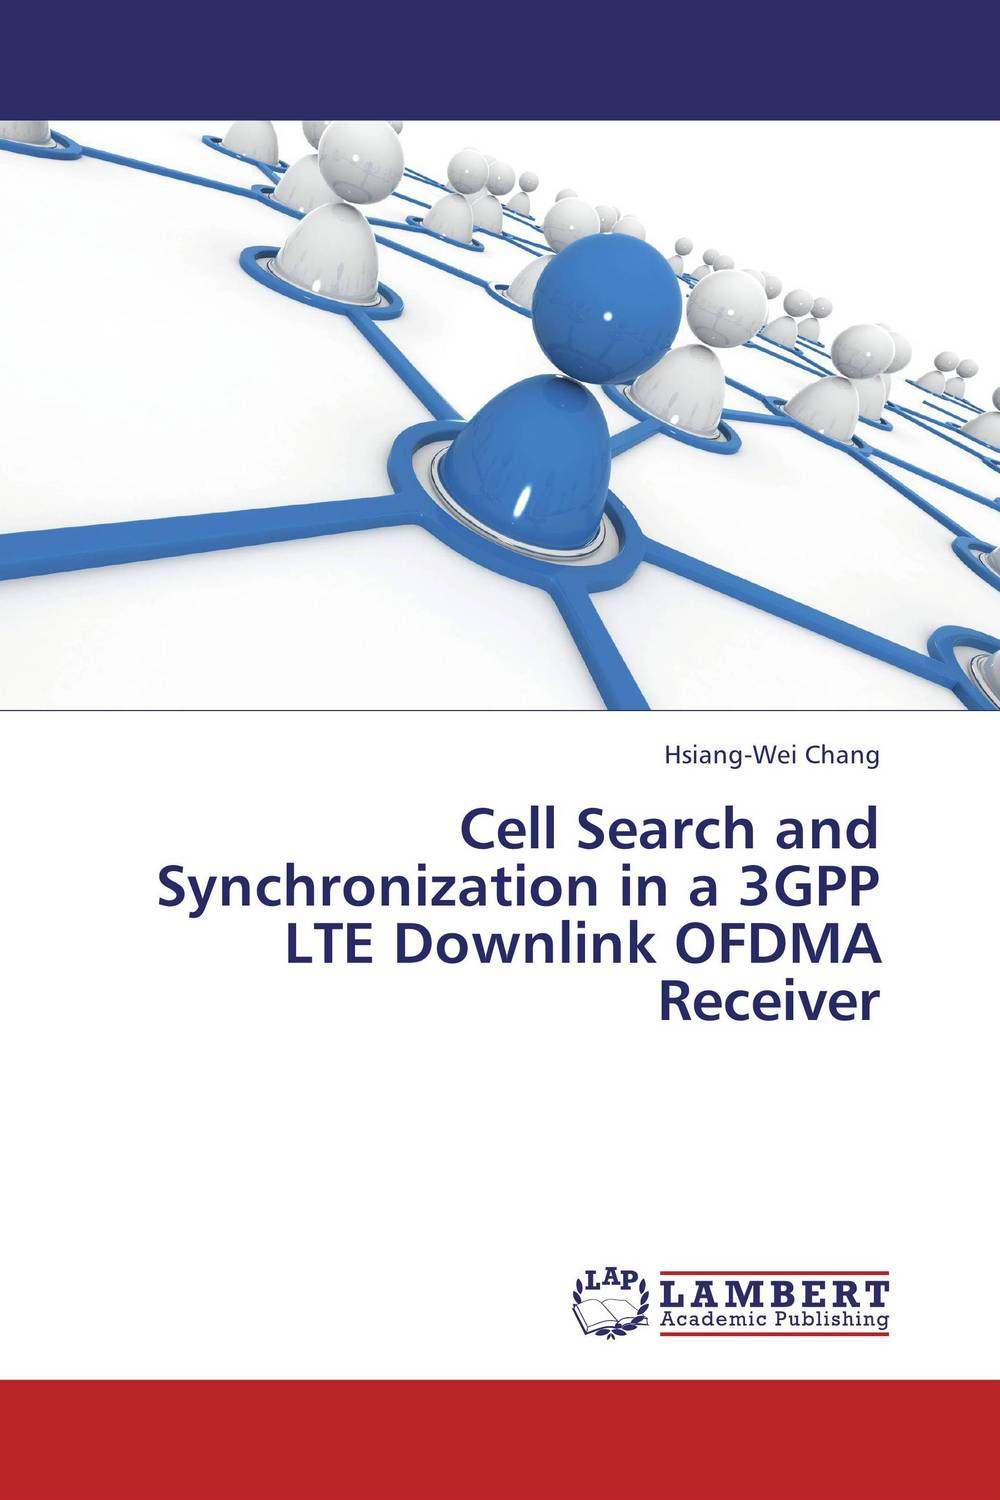 Cell Search and Synchronization in a 3GPP LTE Downlink OFDMA Receiver viruses cell transformation and cancer 5